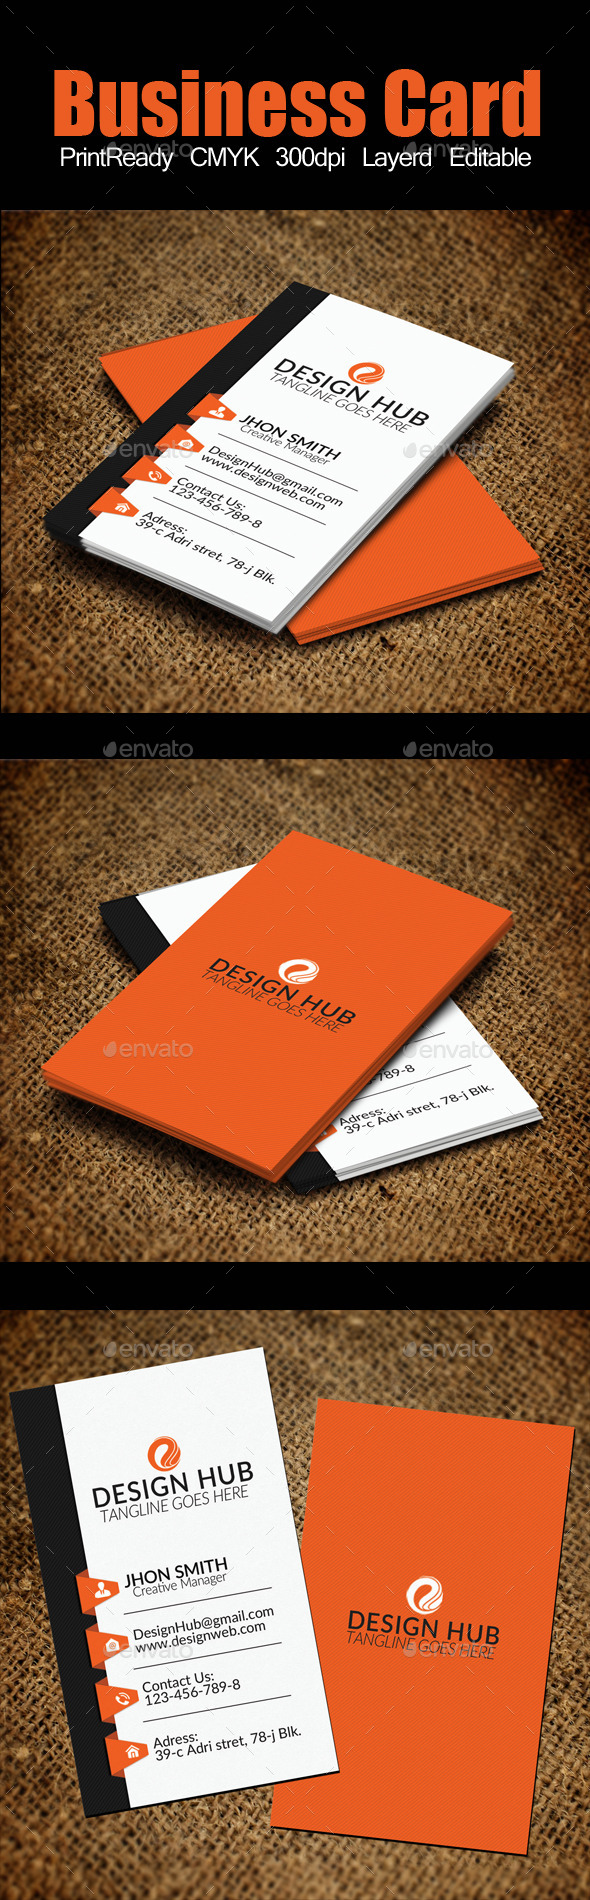 Vertical Business Card Template By Designhub GraphicRiver - Vertical business card template